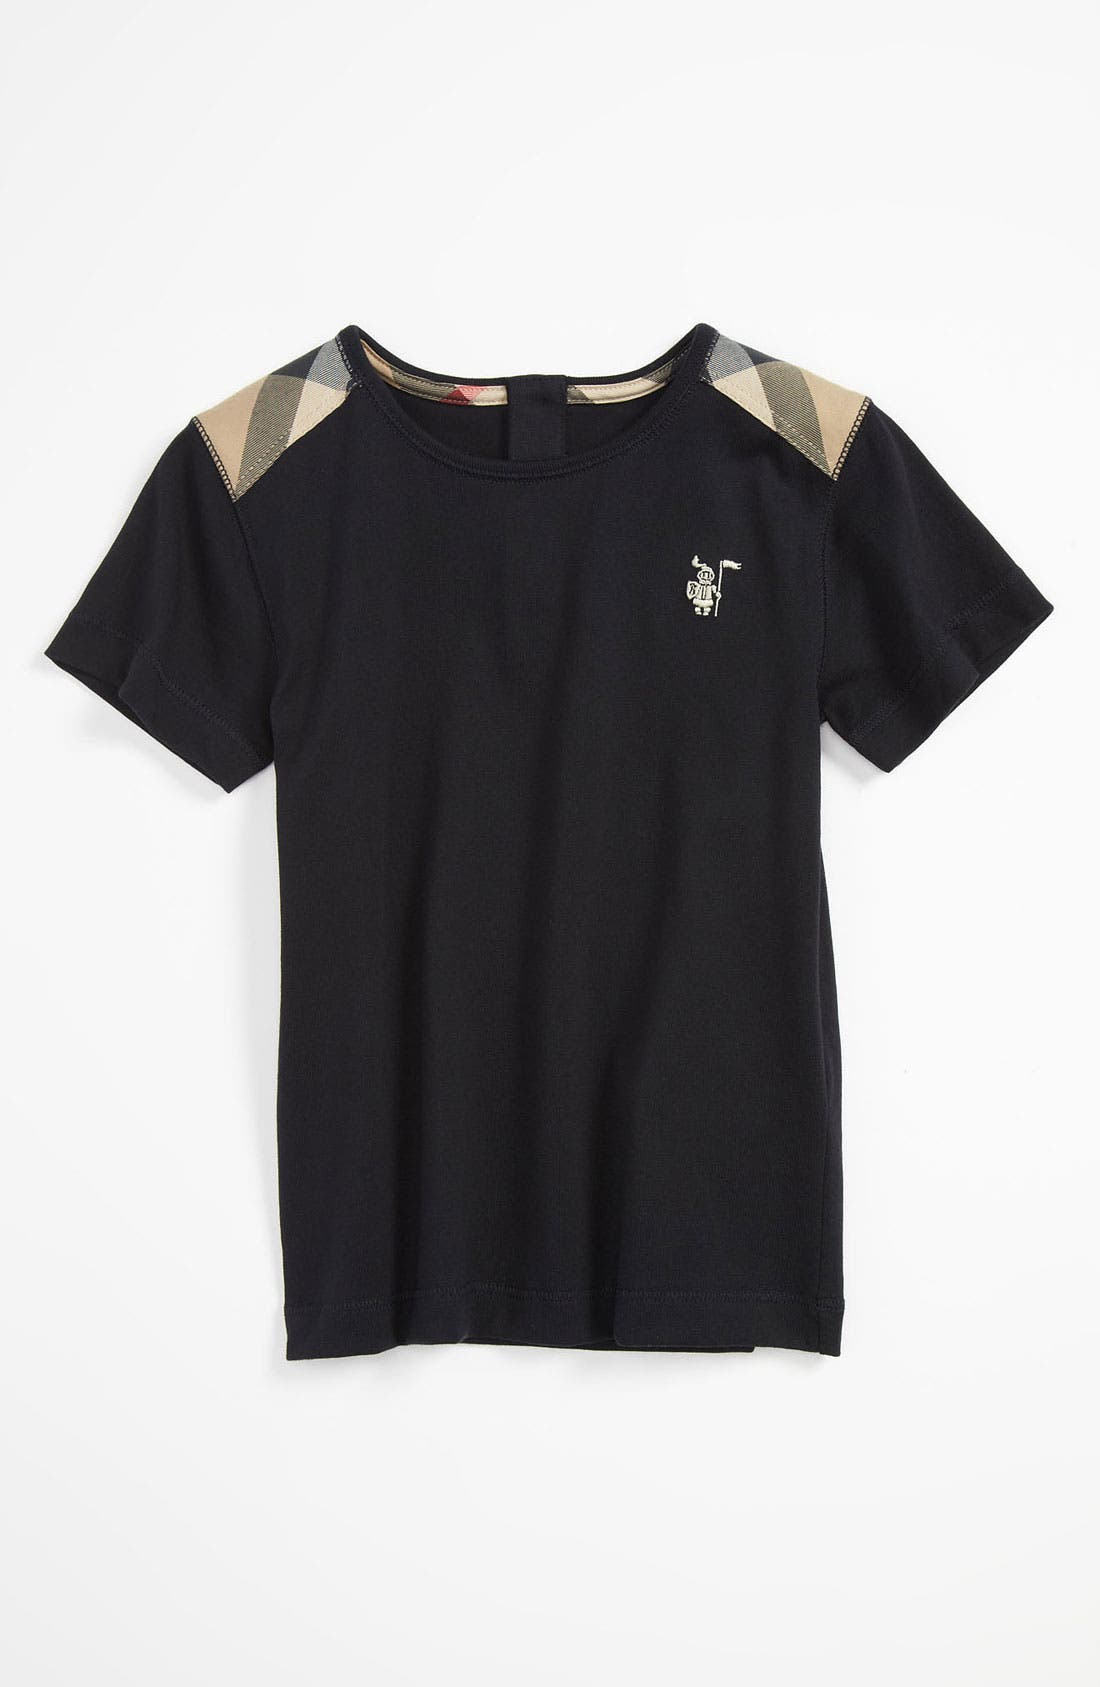 Main Image - Burberry Shoulder Patch T-Shirt (Toddler)